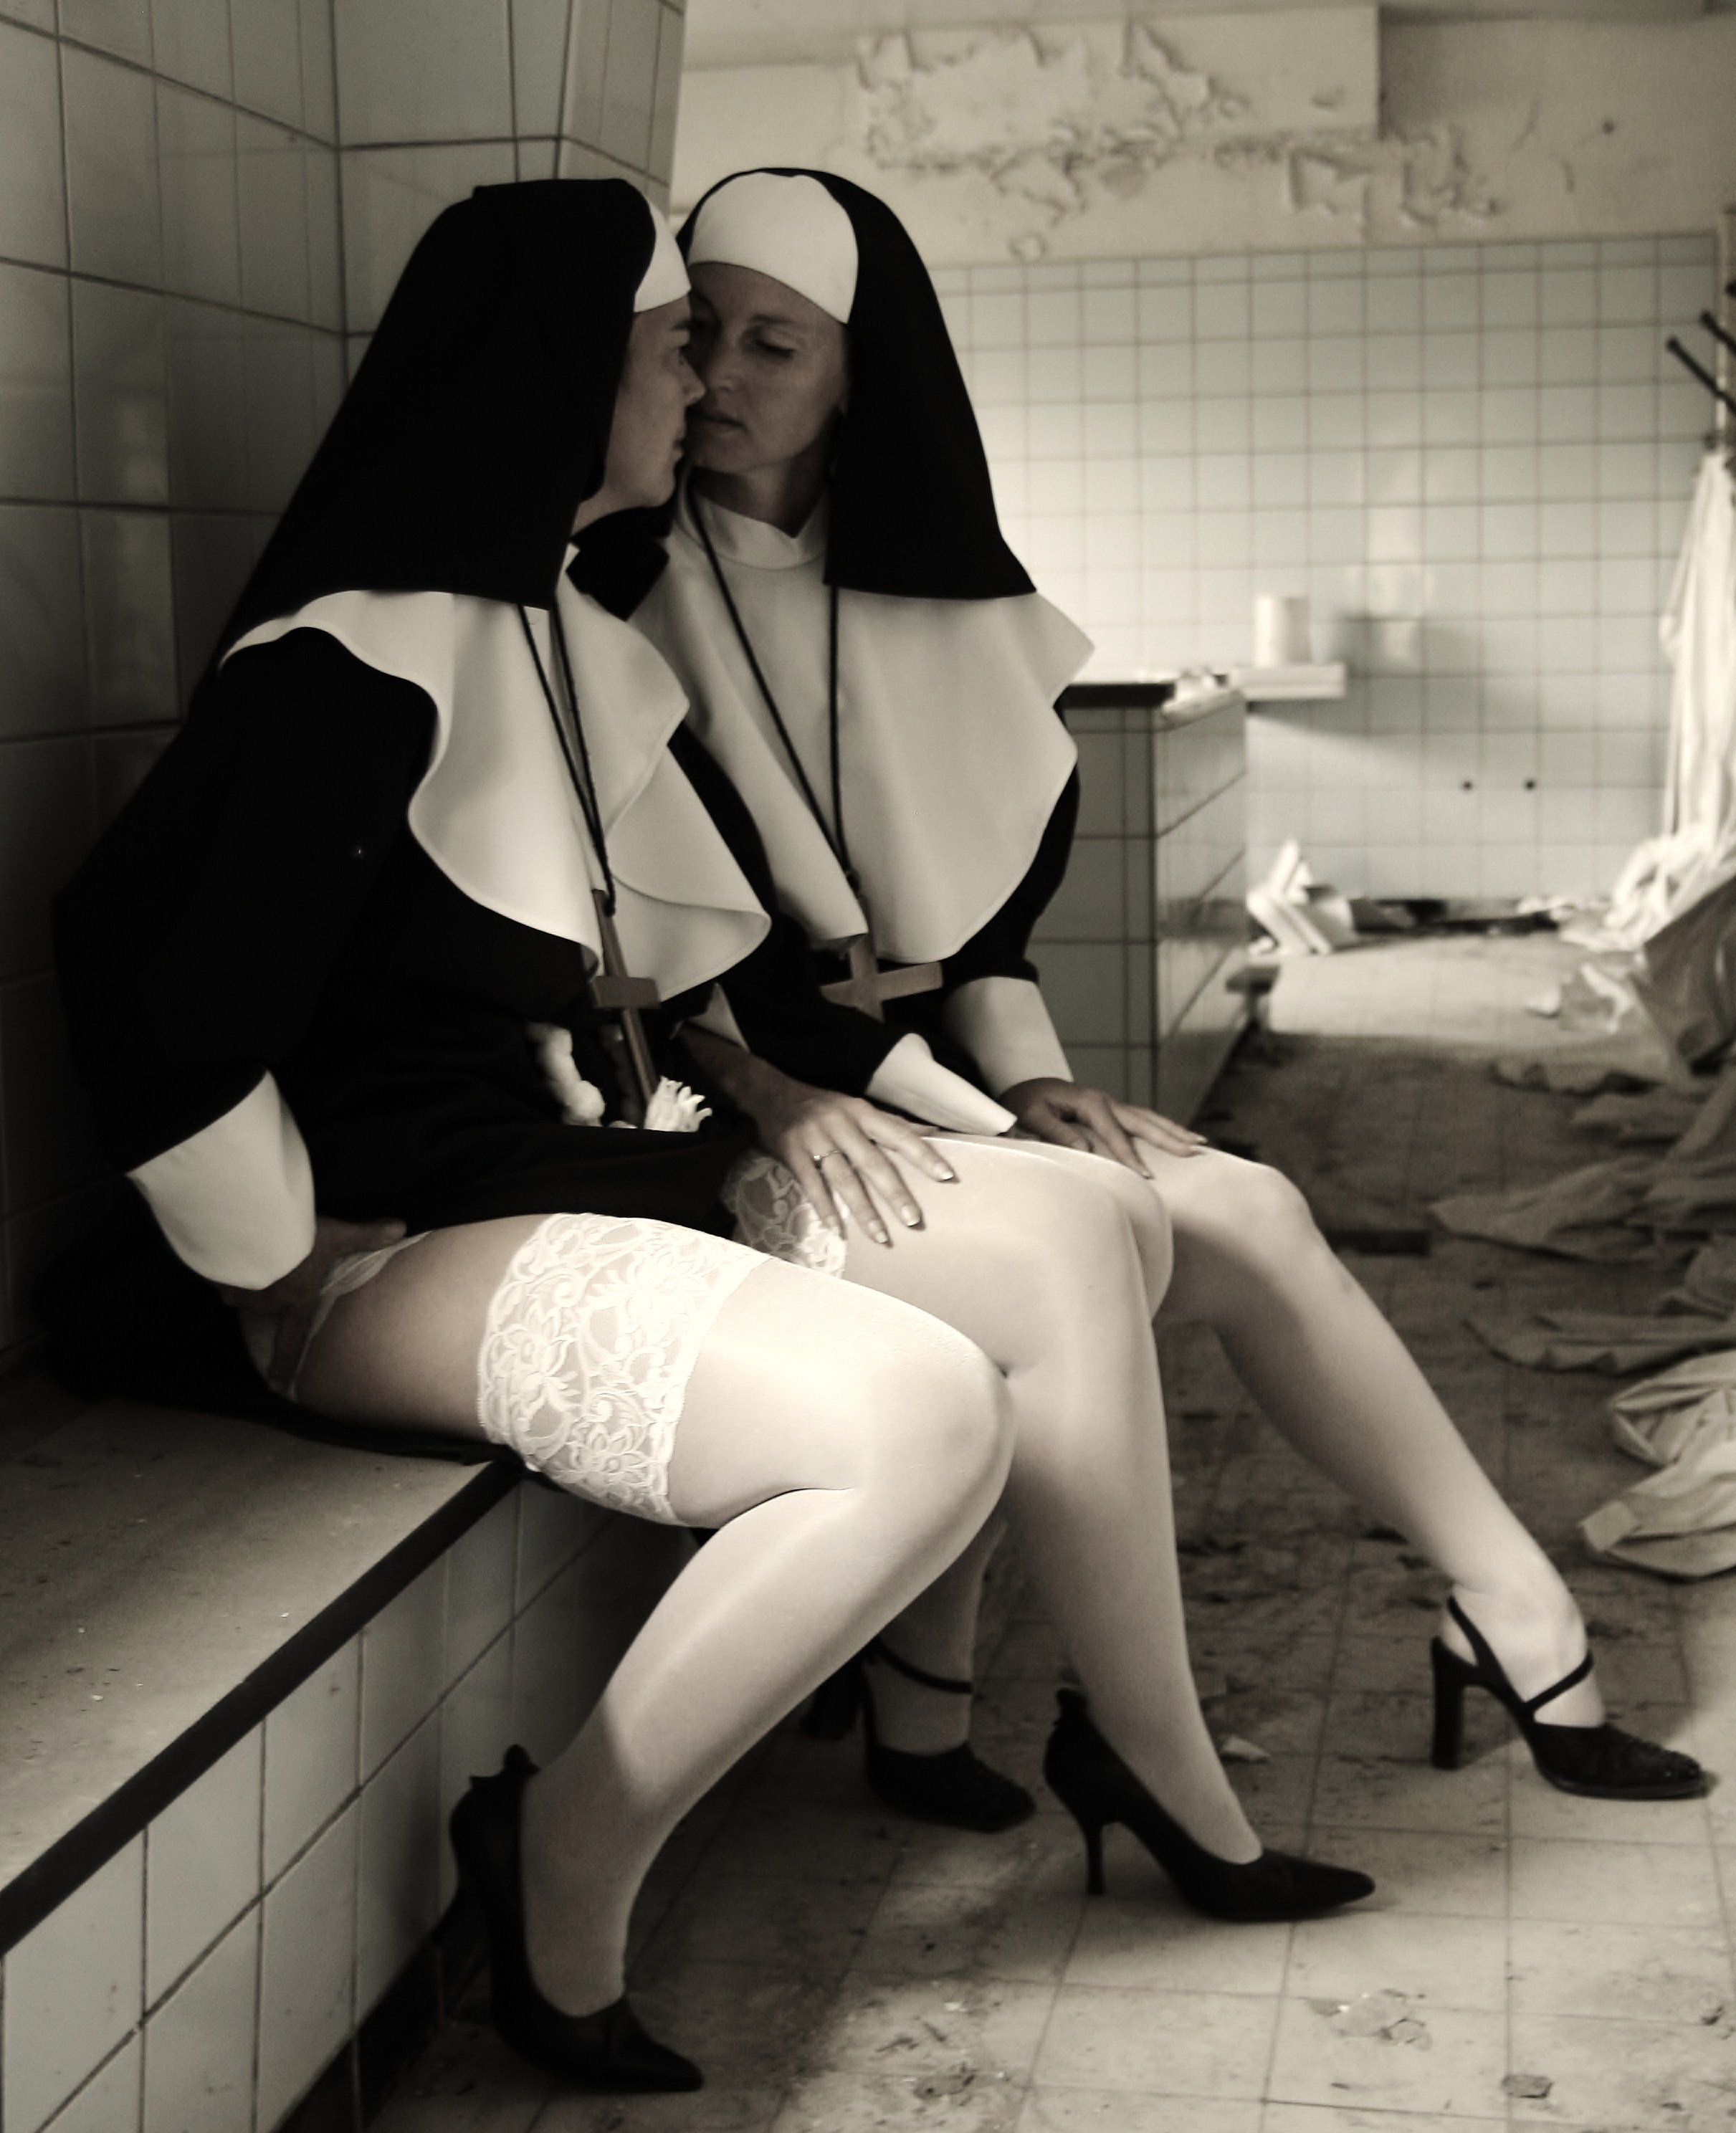 Nun nude drinking with priests apologise, but